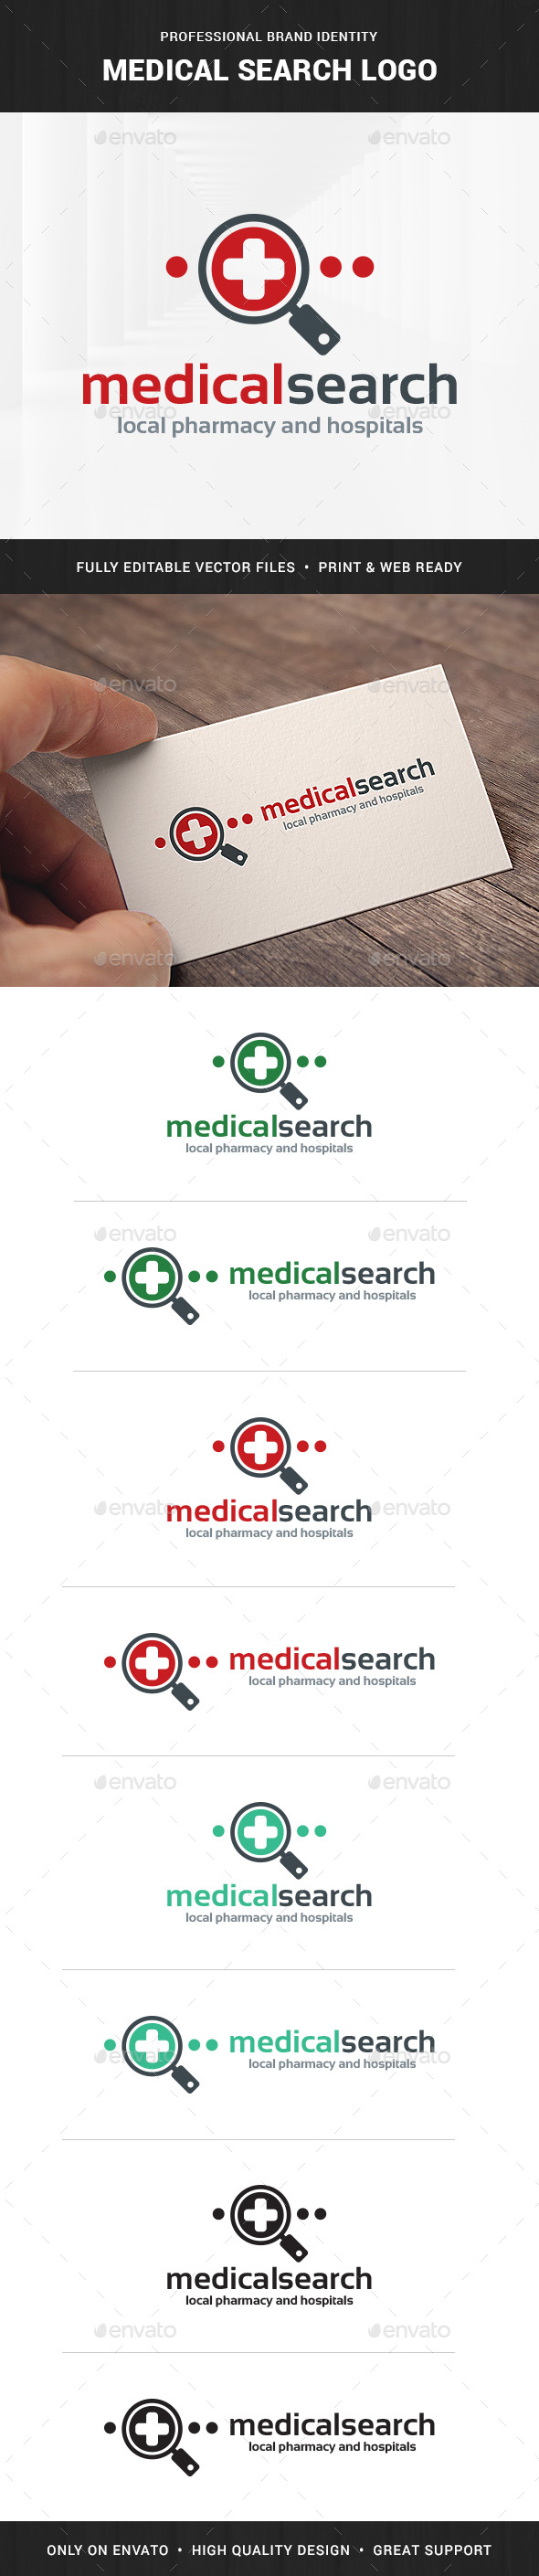 Medical Search Logo Template - Symbols Logo Templates